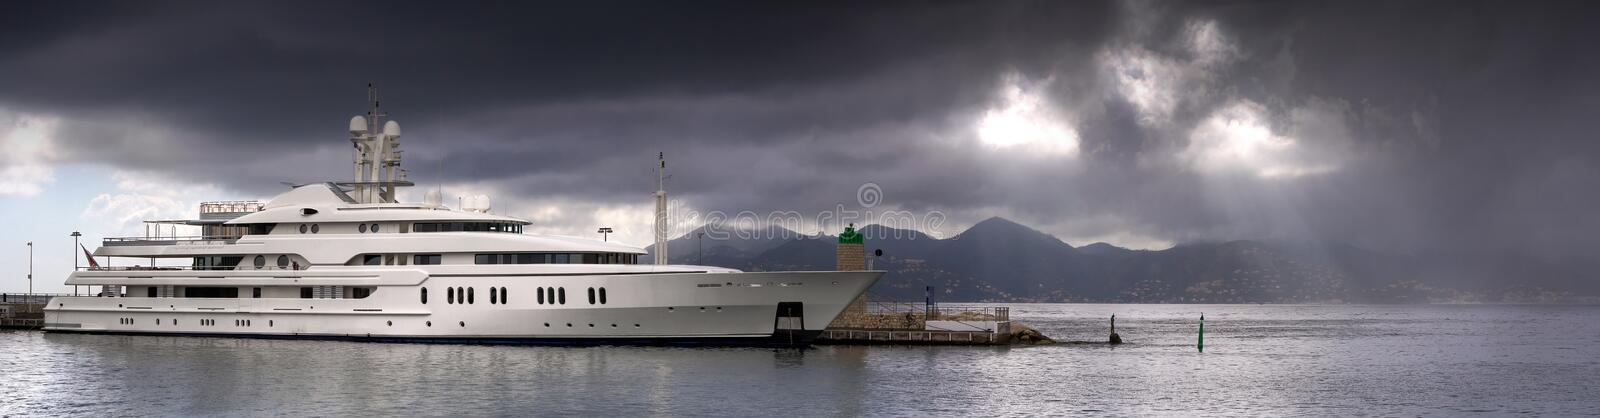 HDR Port Pierre Canto. A yacht boat in a safe harbor with a storm approaching in the sky royalty free stock photos